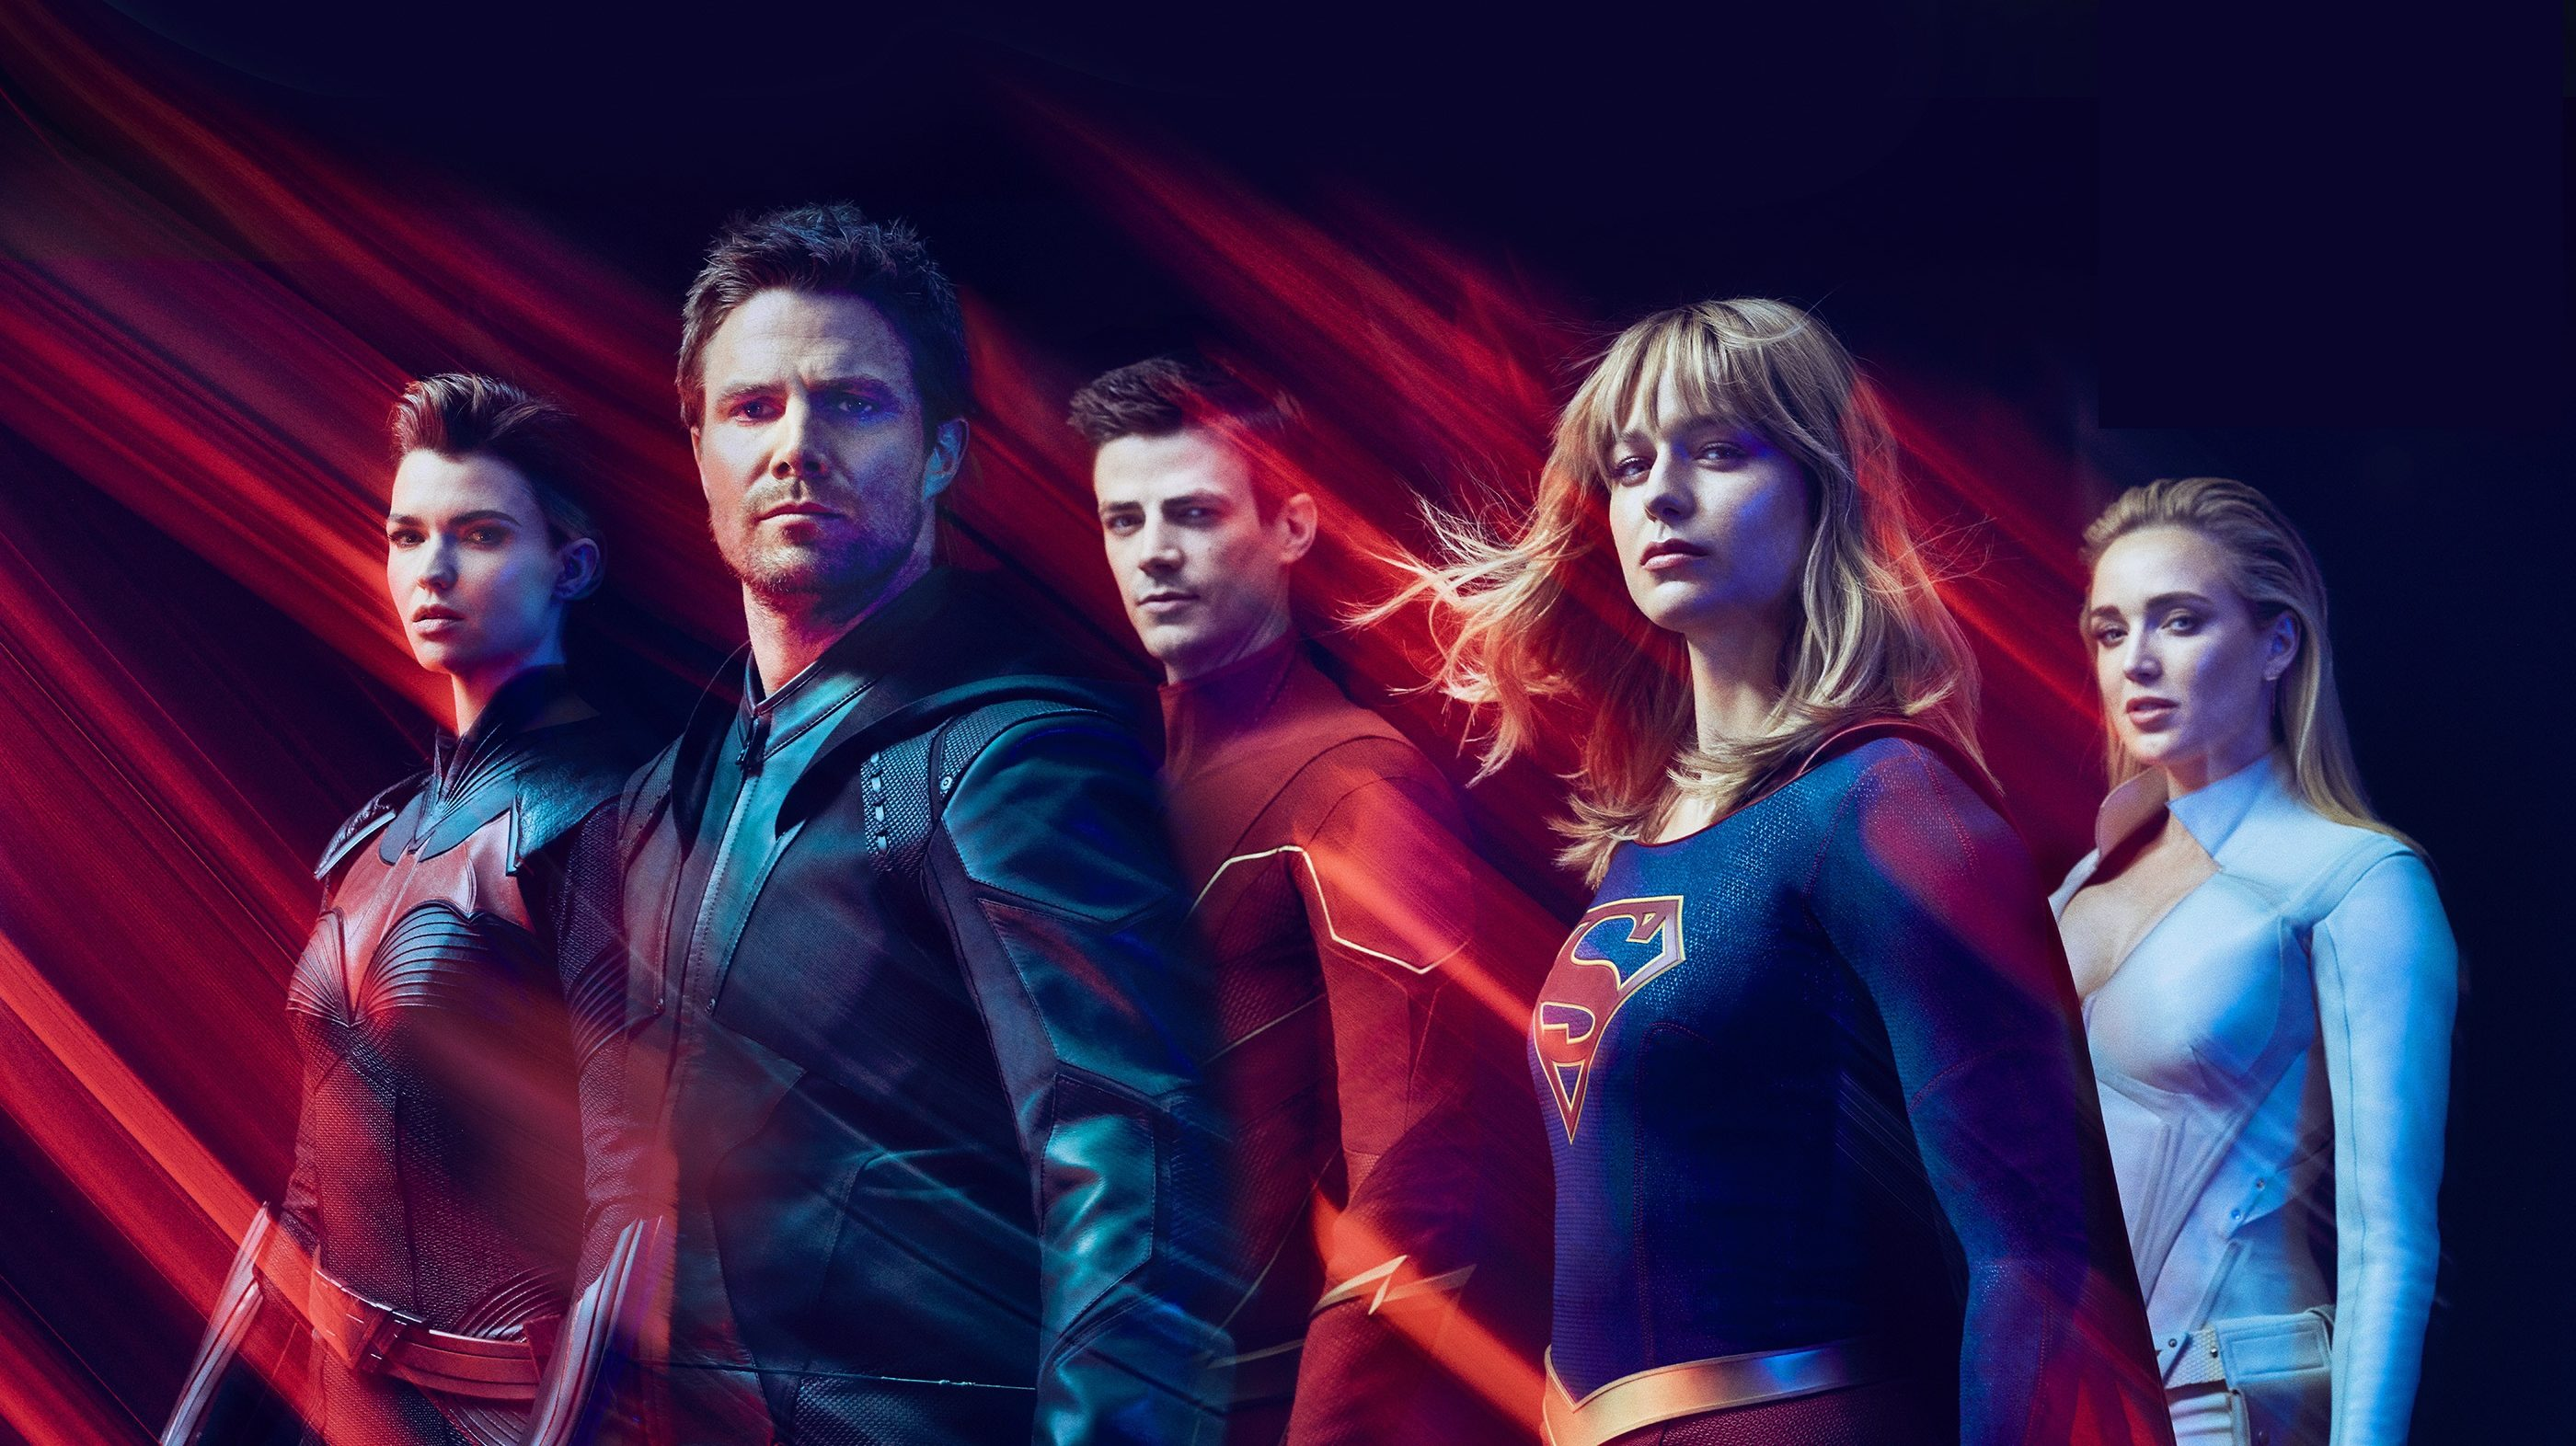 Crisis on Infinite Earths CW Ending Explained and Crisis Season 2 or Next Crossover Release Date